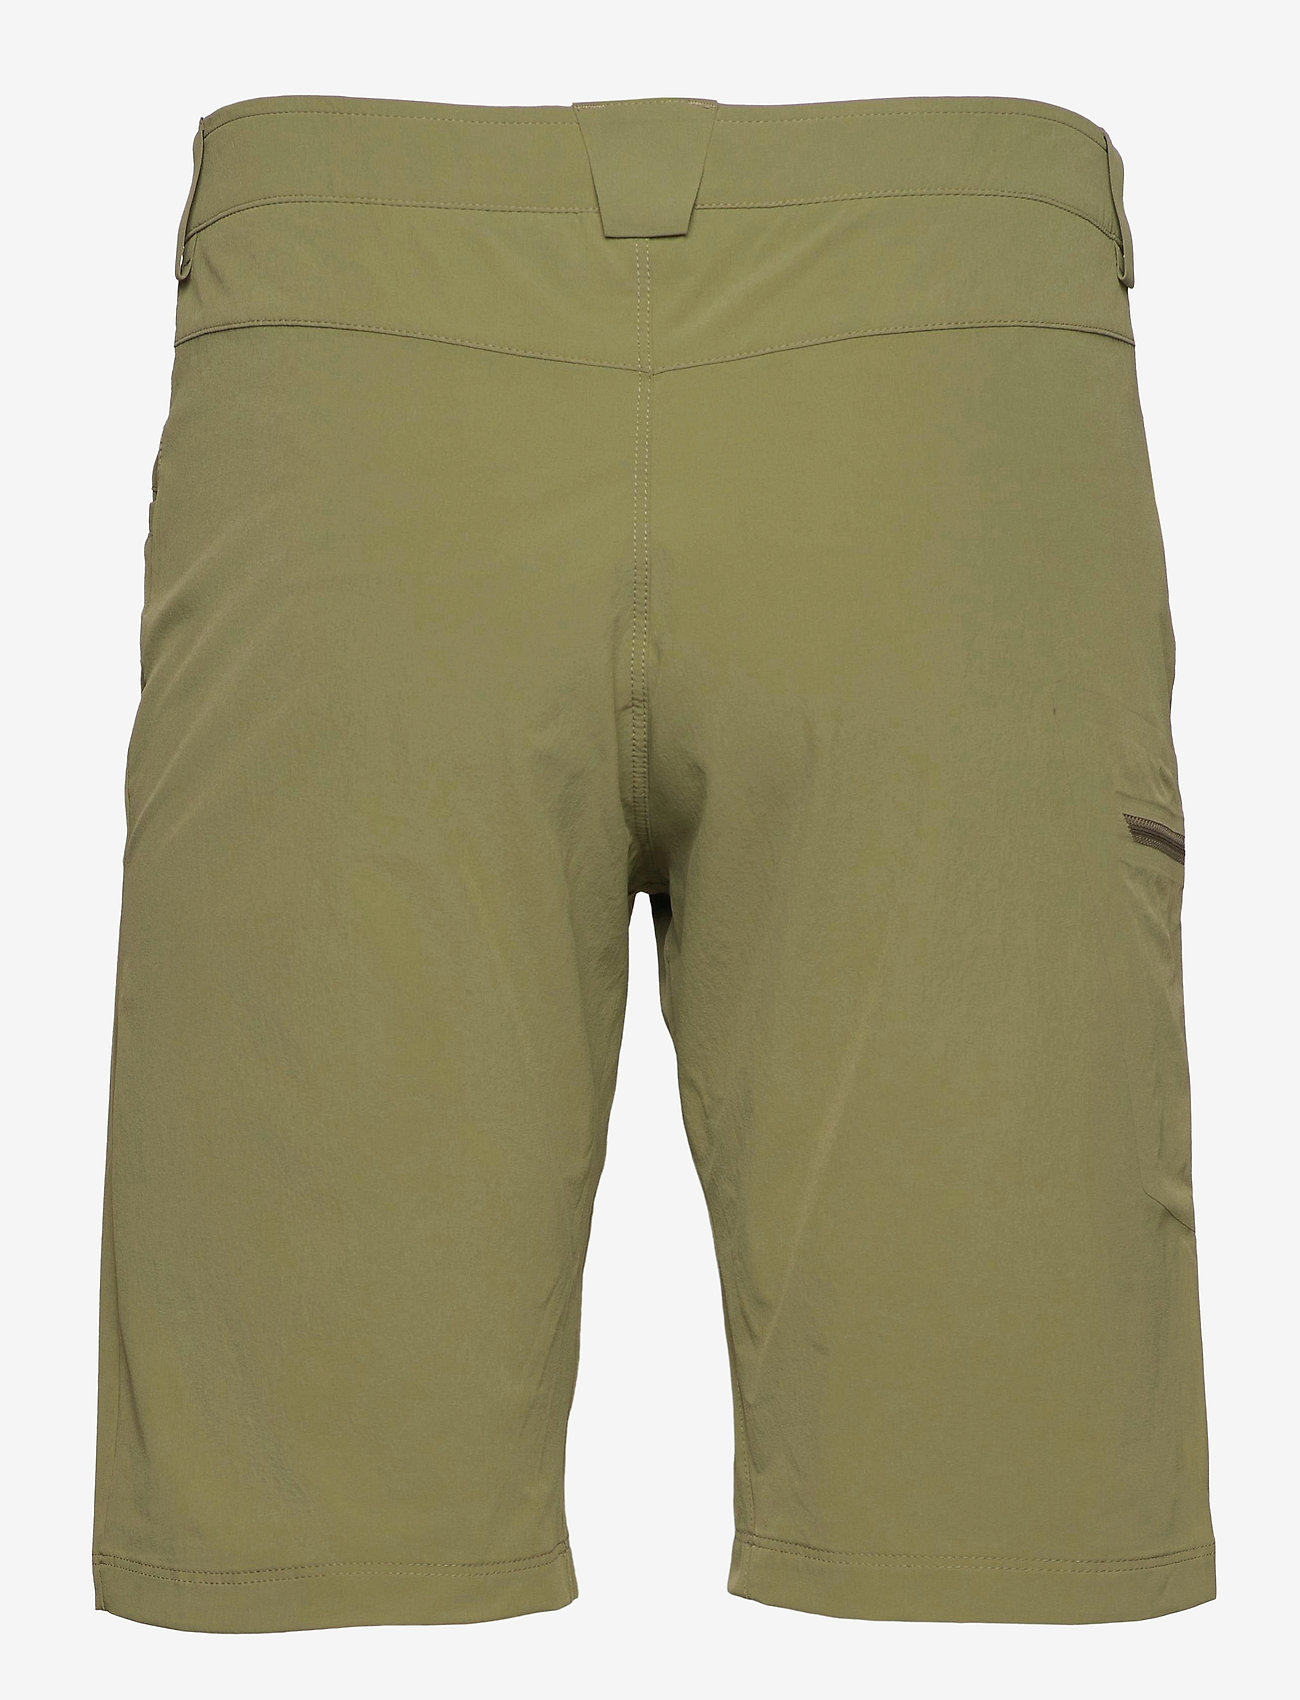 Salomon - WAYFARER SHORTS M Martini Olive - casual shorts - martini olive - 1